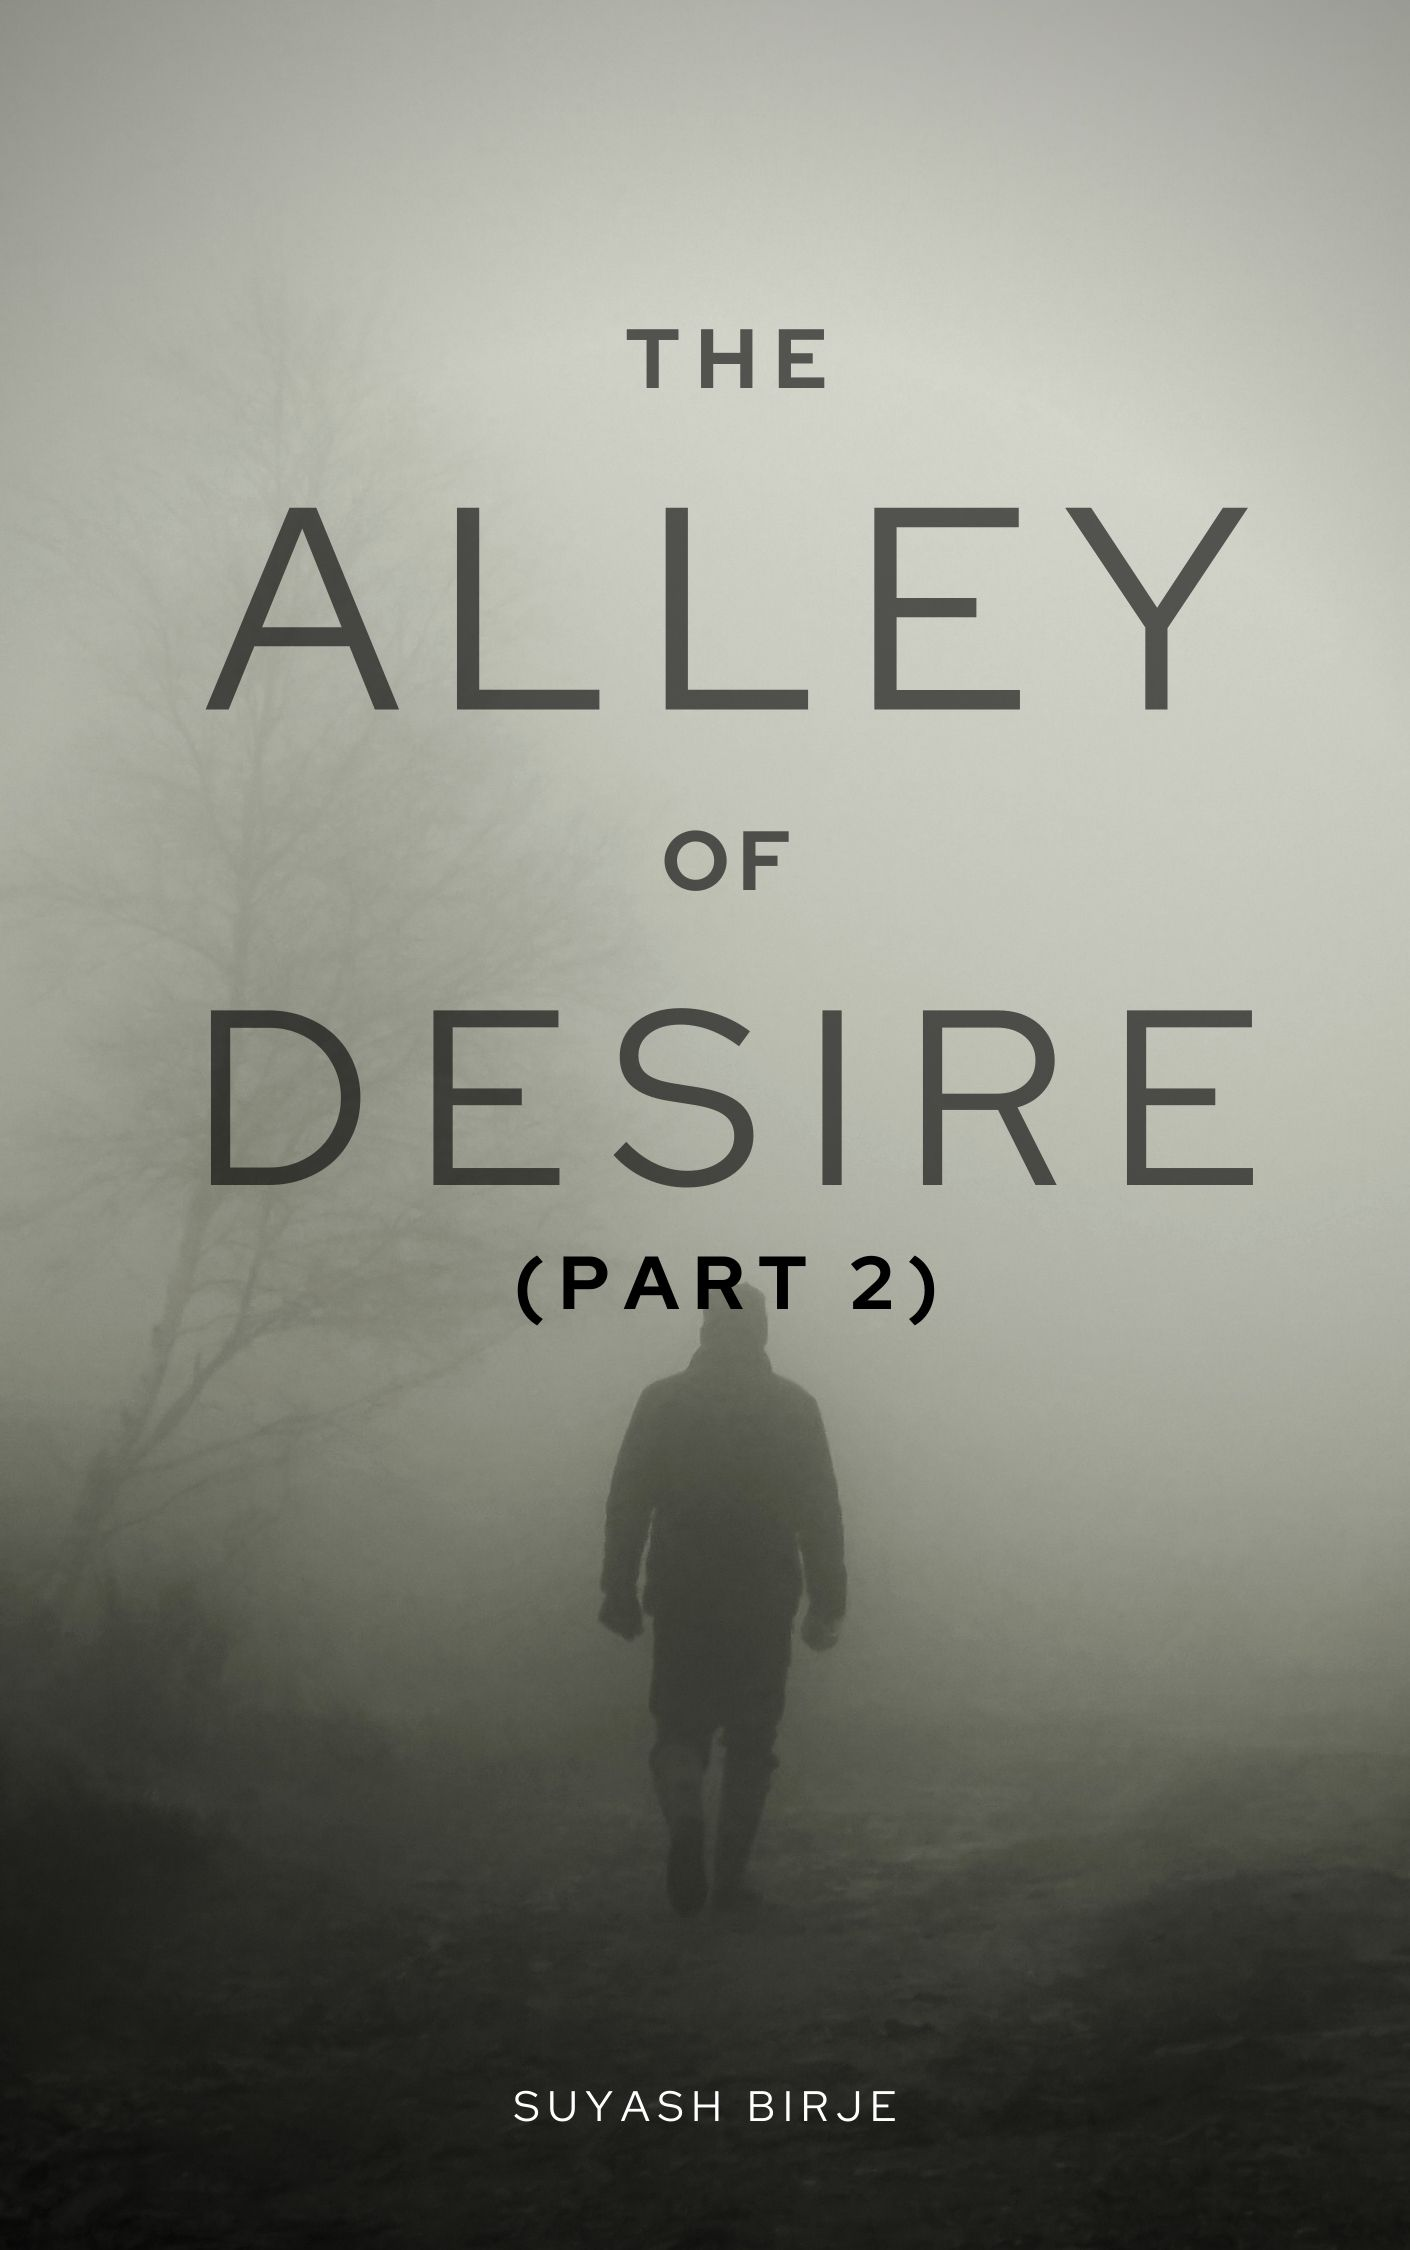 The Alley of Desire (Part 2)